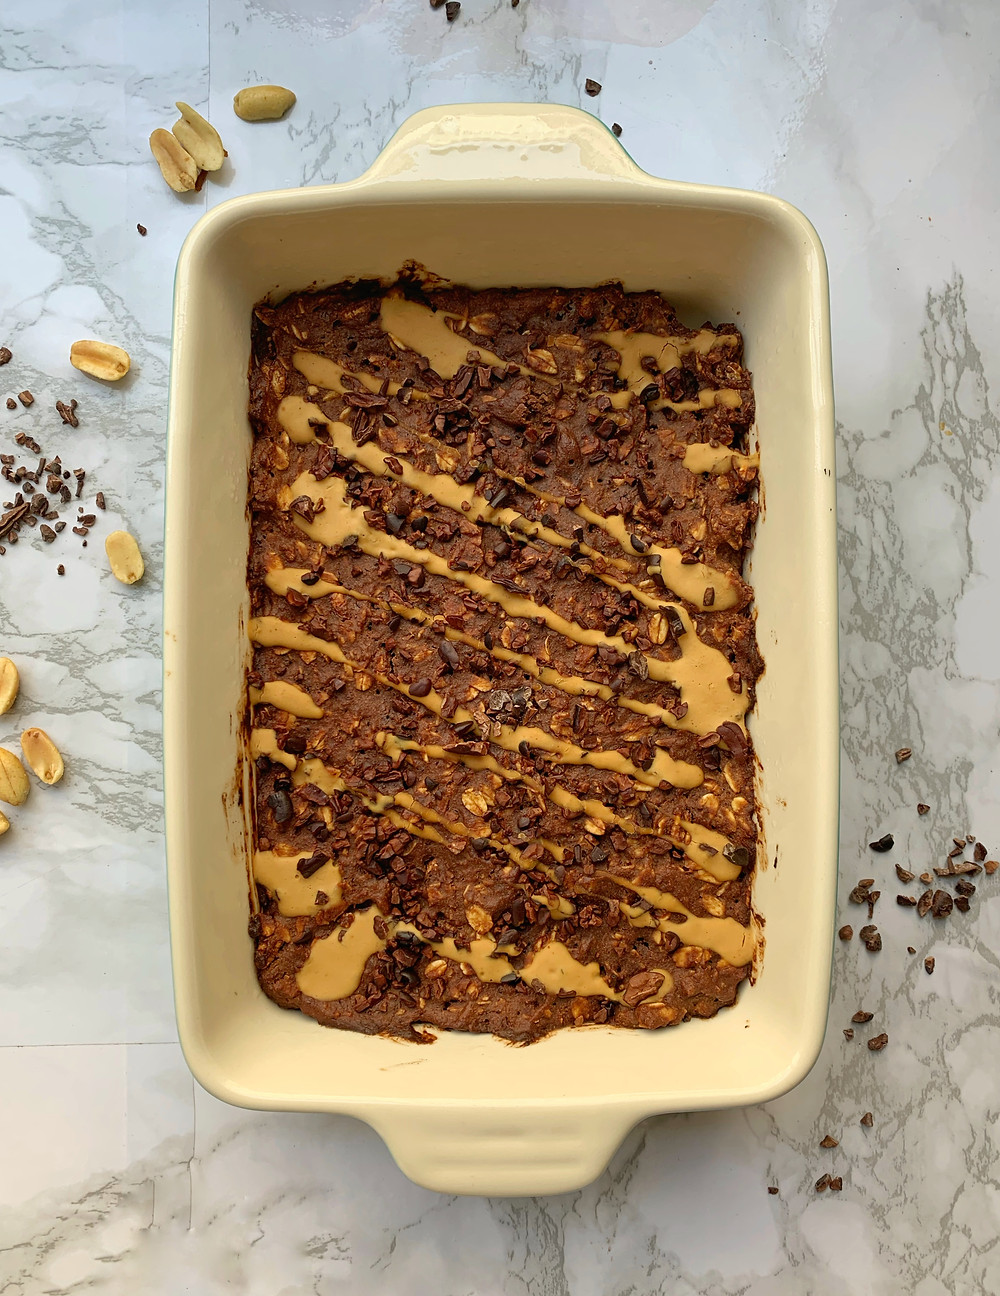 Chocolate Peanut Butter Baked Oatmeal?